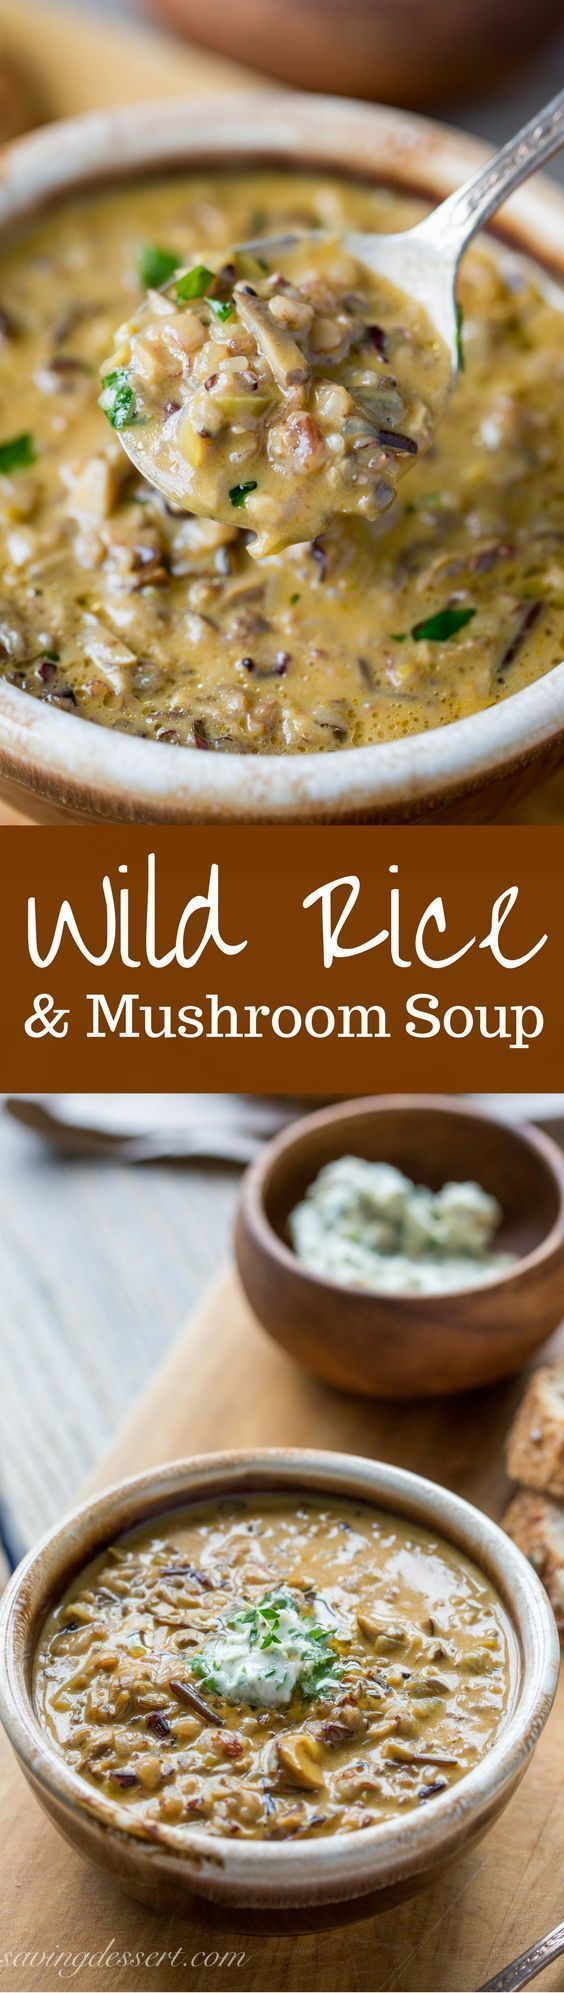 Wild Rice & Mushroom Soup with Parsley Butter -Rich, hearty, earthy and comforting - this soup is unique and perfect for the mushroom lover in your house   http://www.savingdessert.com